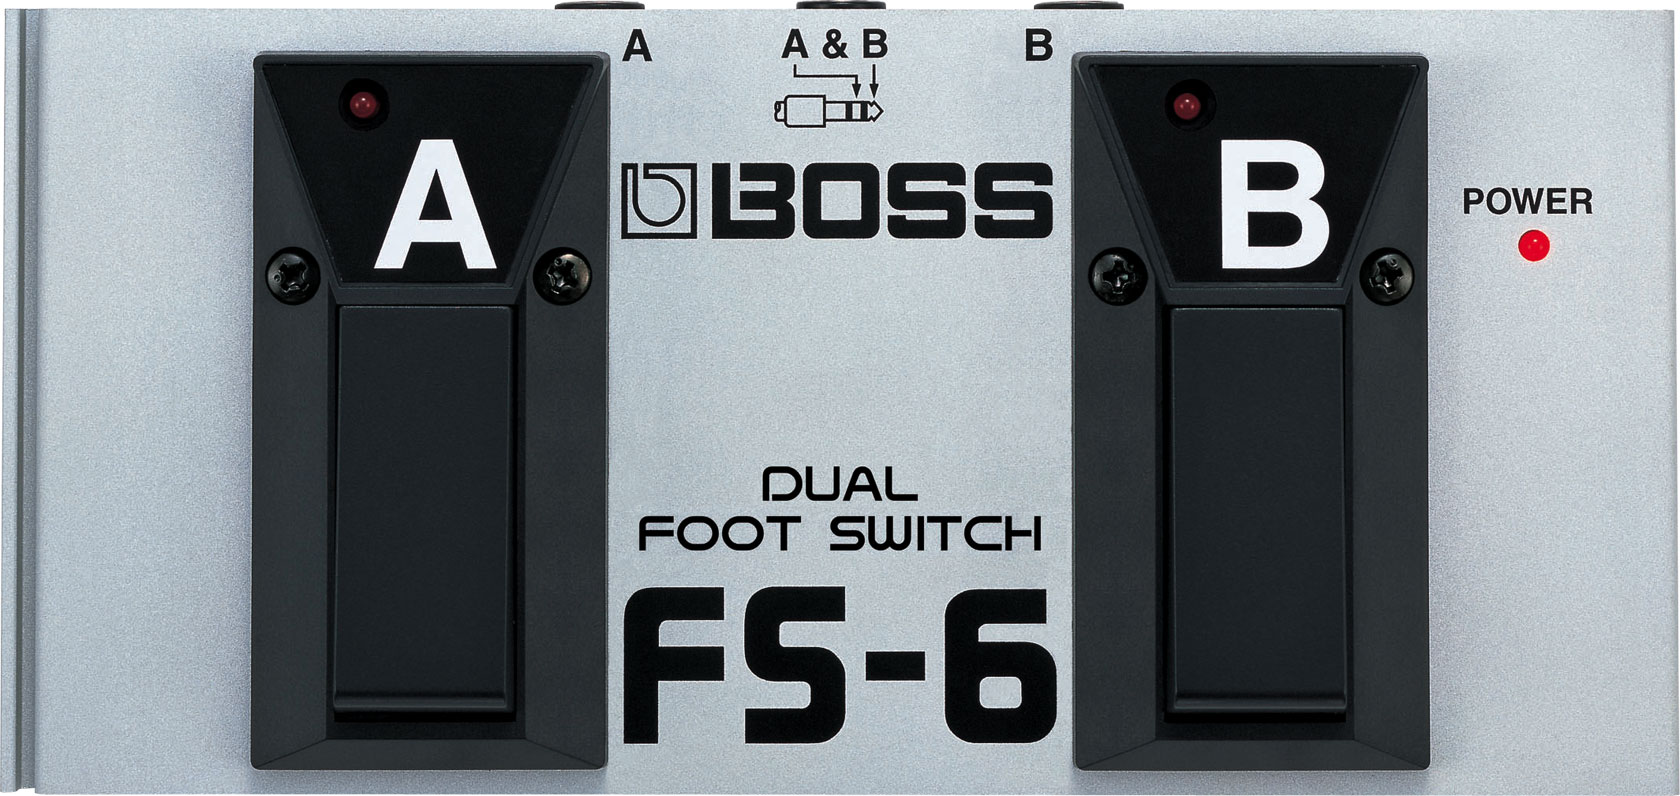 boss fs 6 dual footswitch rh boss info boss fs-6 user manual boss fs-6 manual pdf español